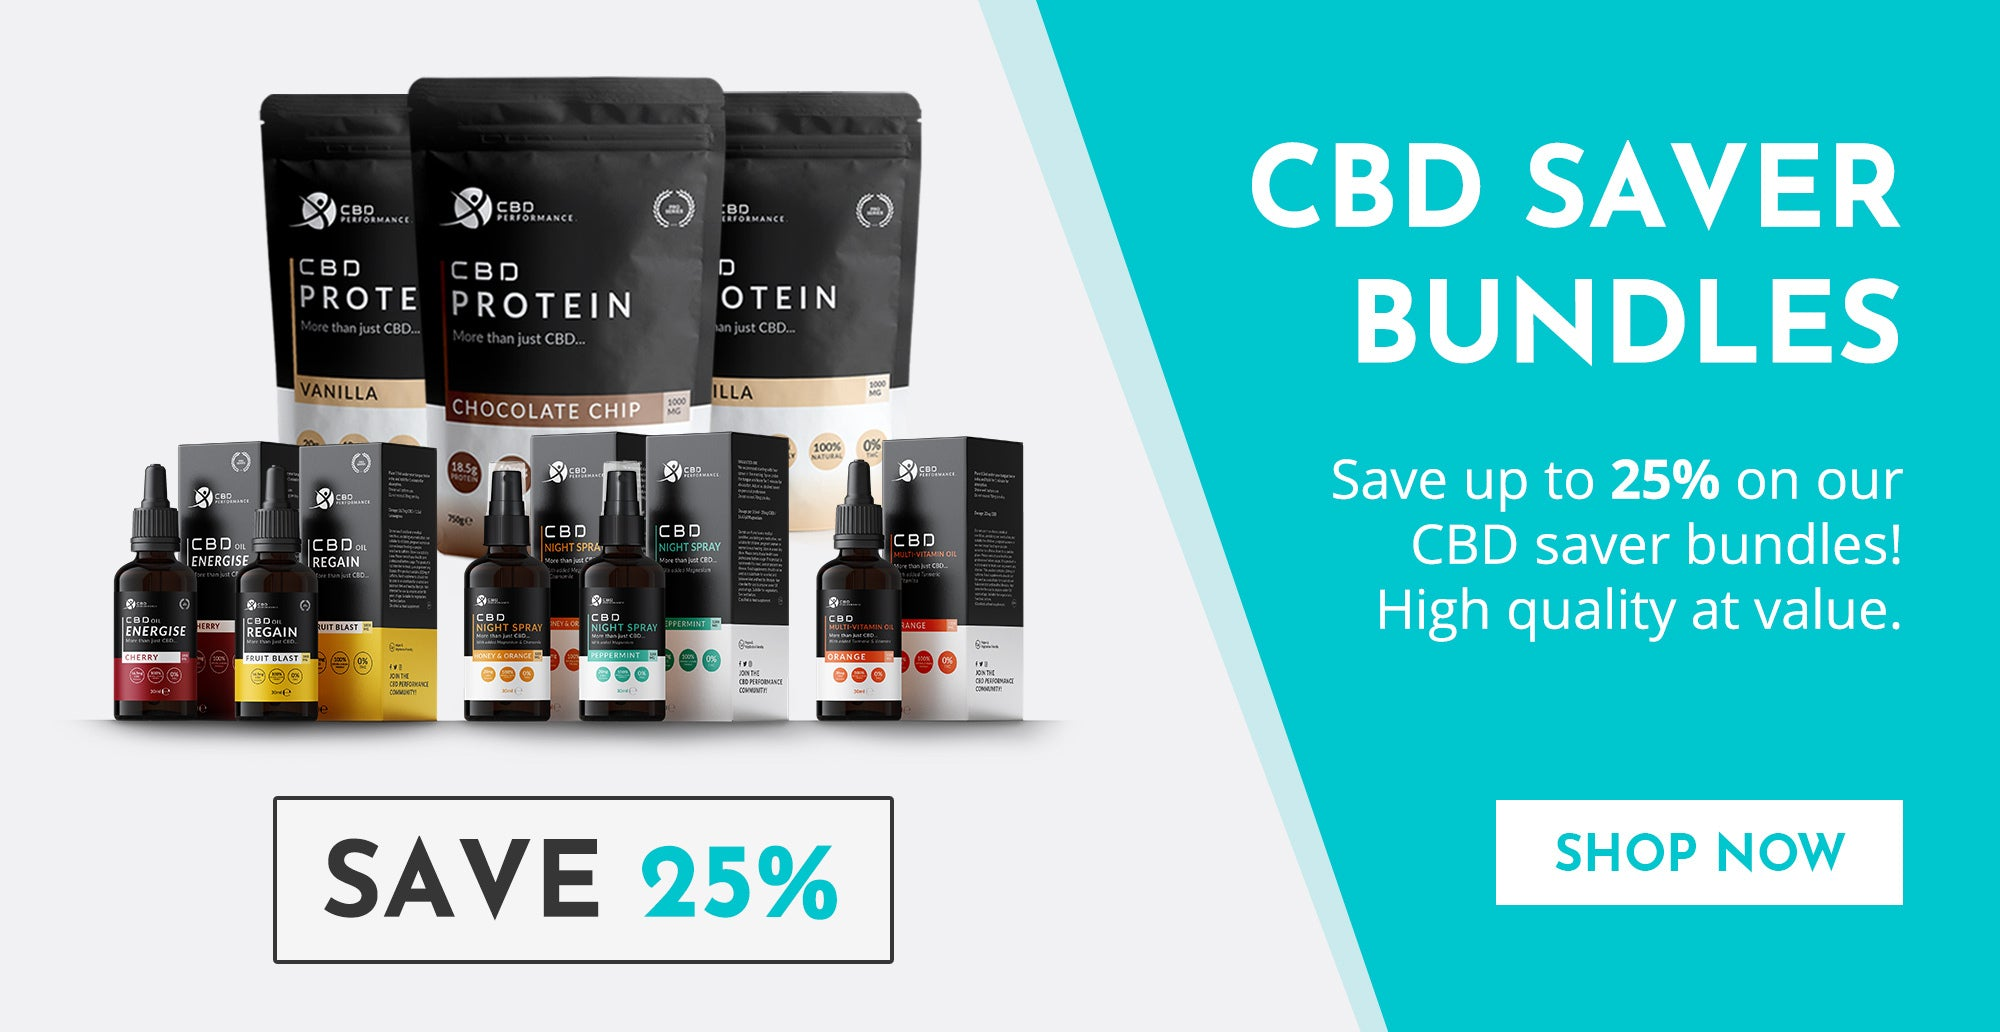 CBD product sale with discounts